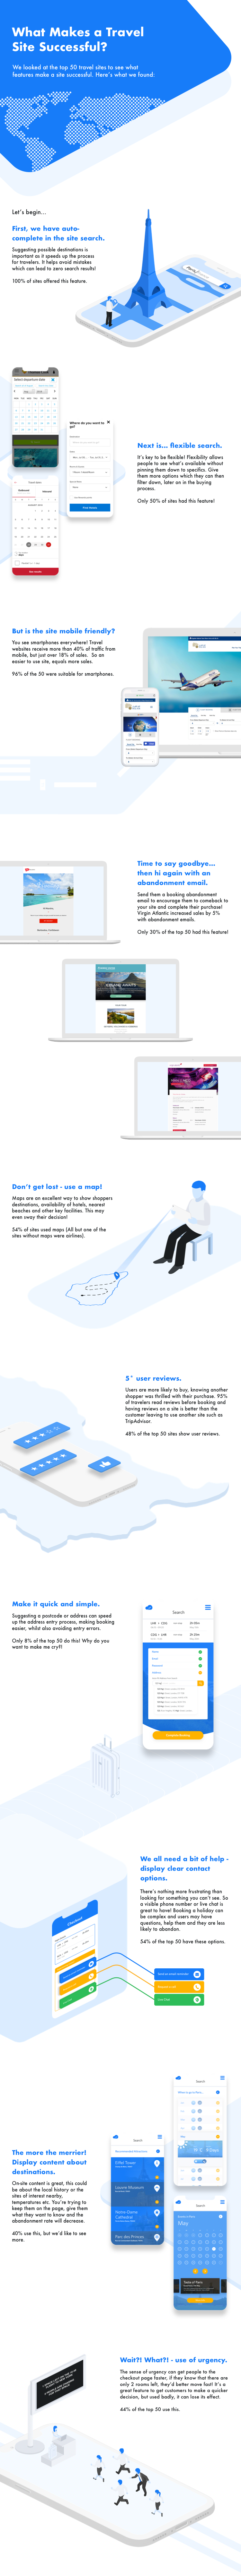 what makes a travel site successful infographic